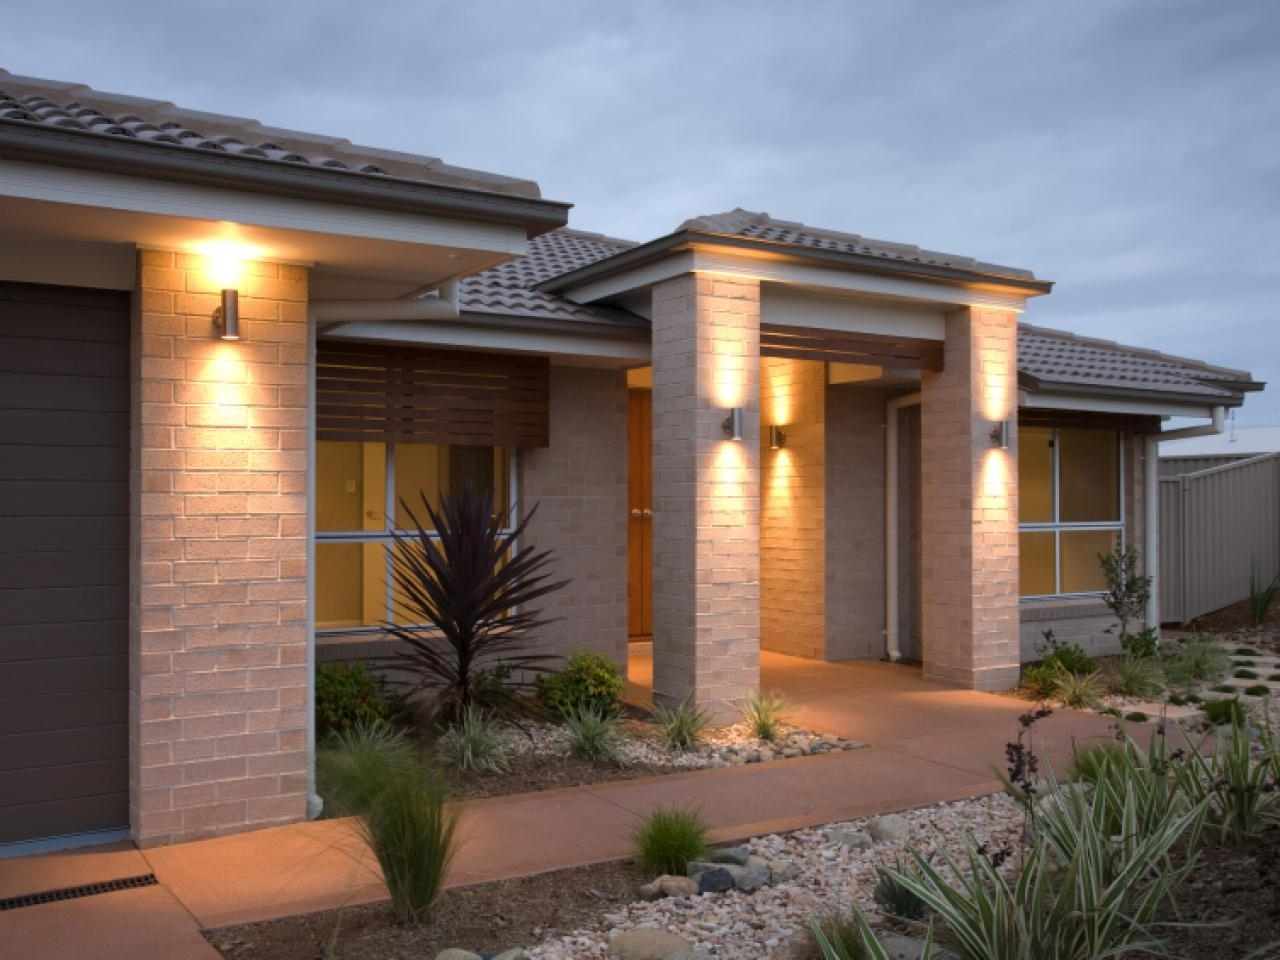 Light : Awesome Exterior Coach Lights Outdoor Wall For Houses Pertaining To Current Outdoor Wall Accent Lighting (View 5 of 20)